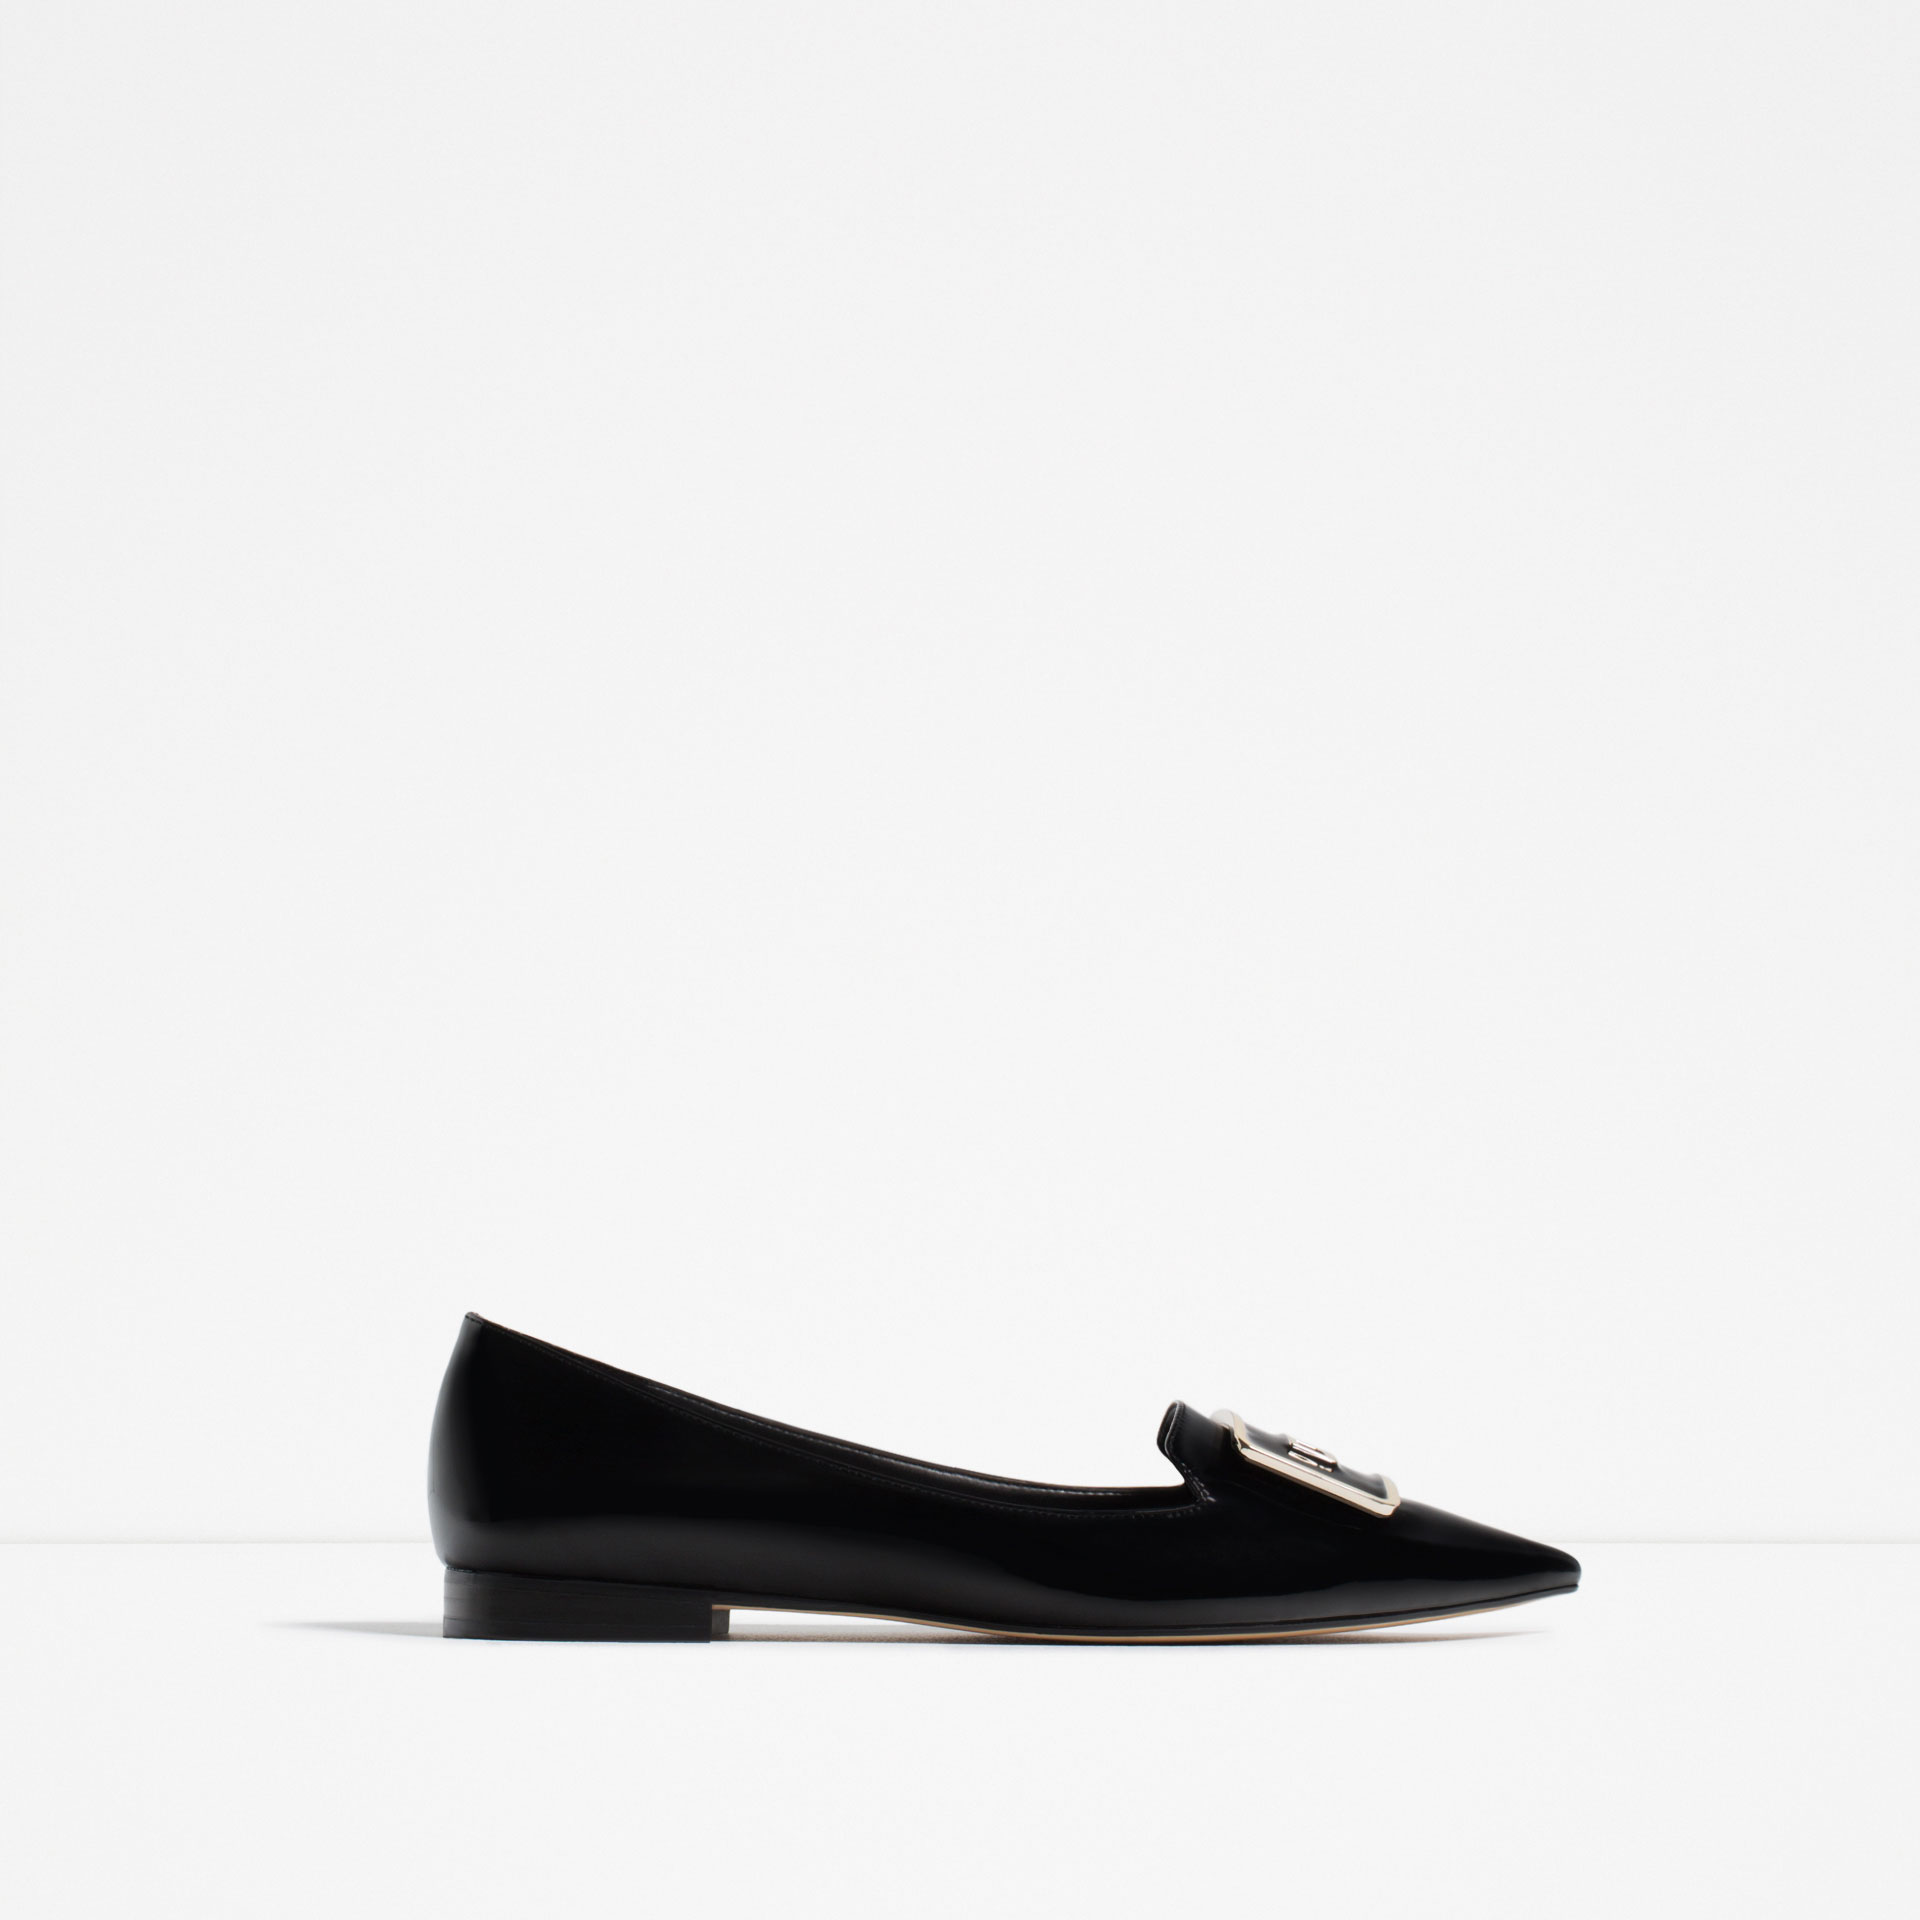 zara, loafers, black